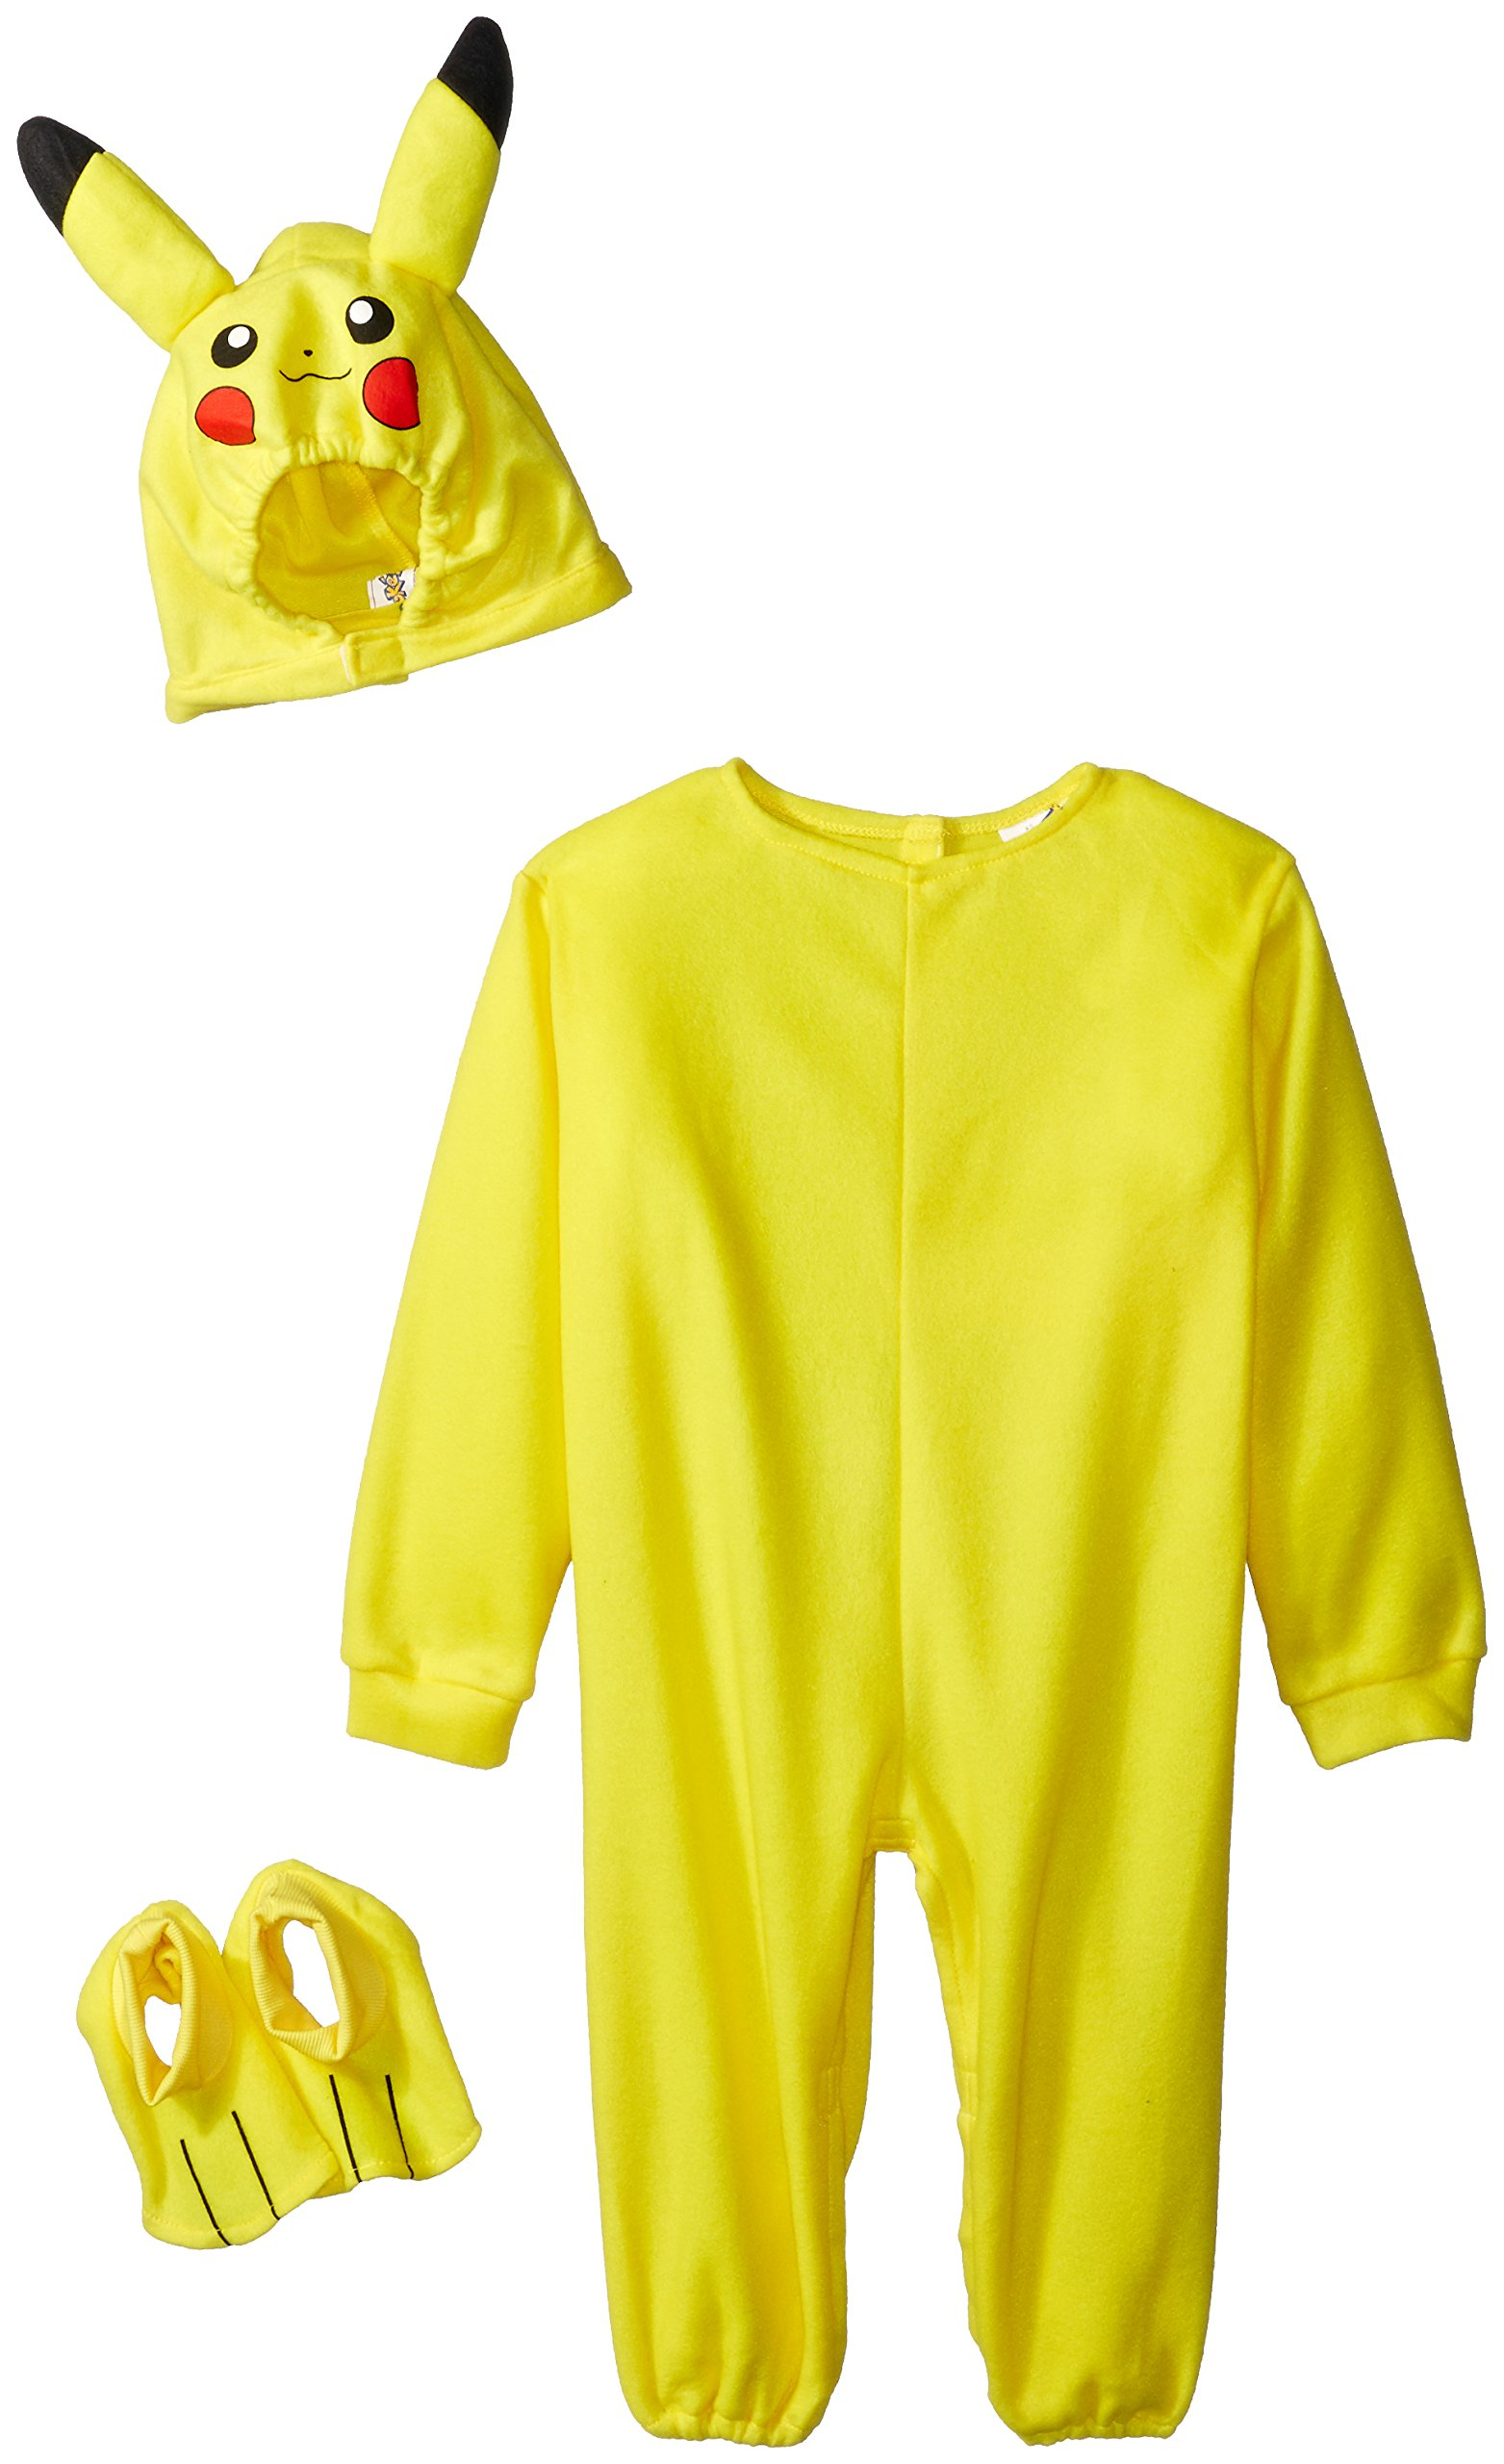 Cheap Baby Pikachu Costume find Baby Pikachu Costume deals on line